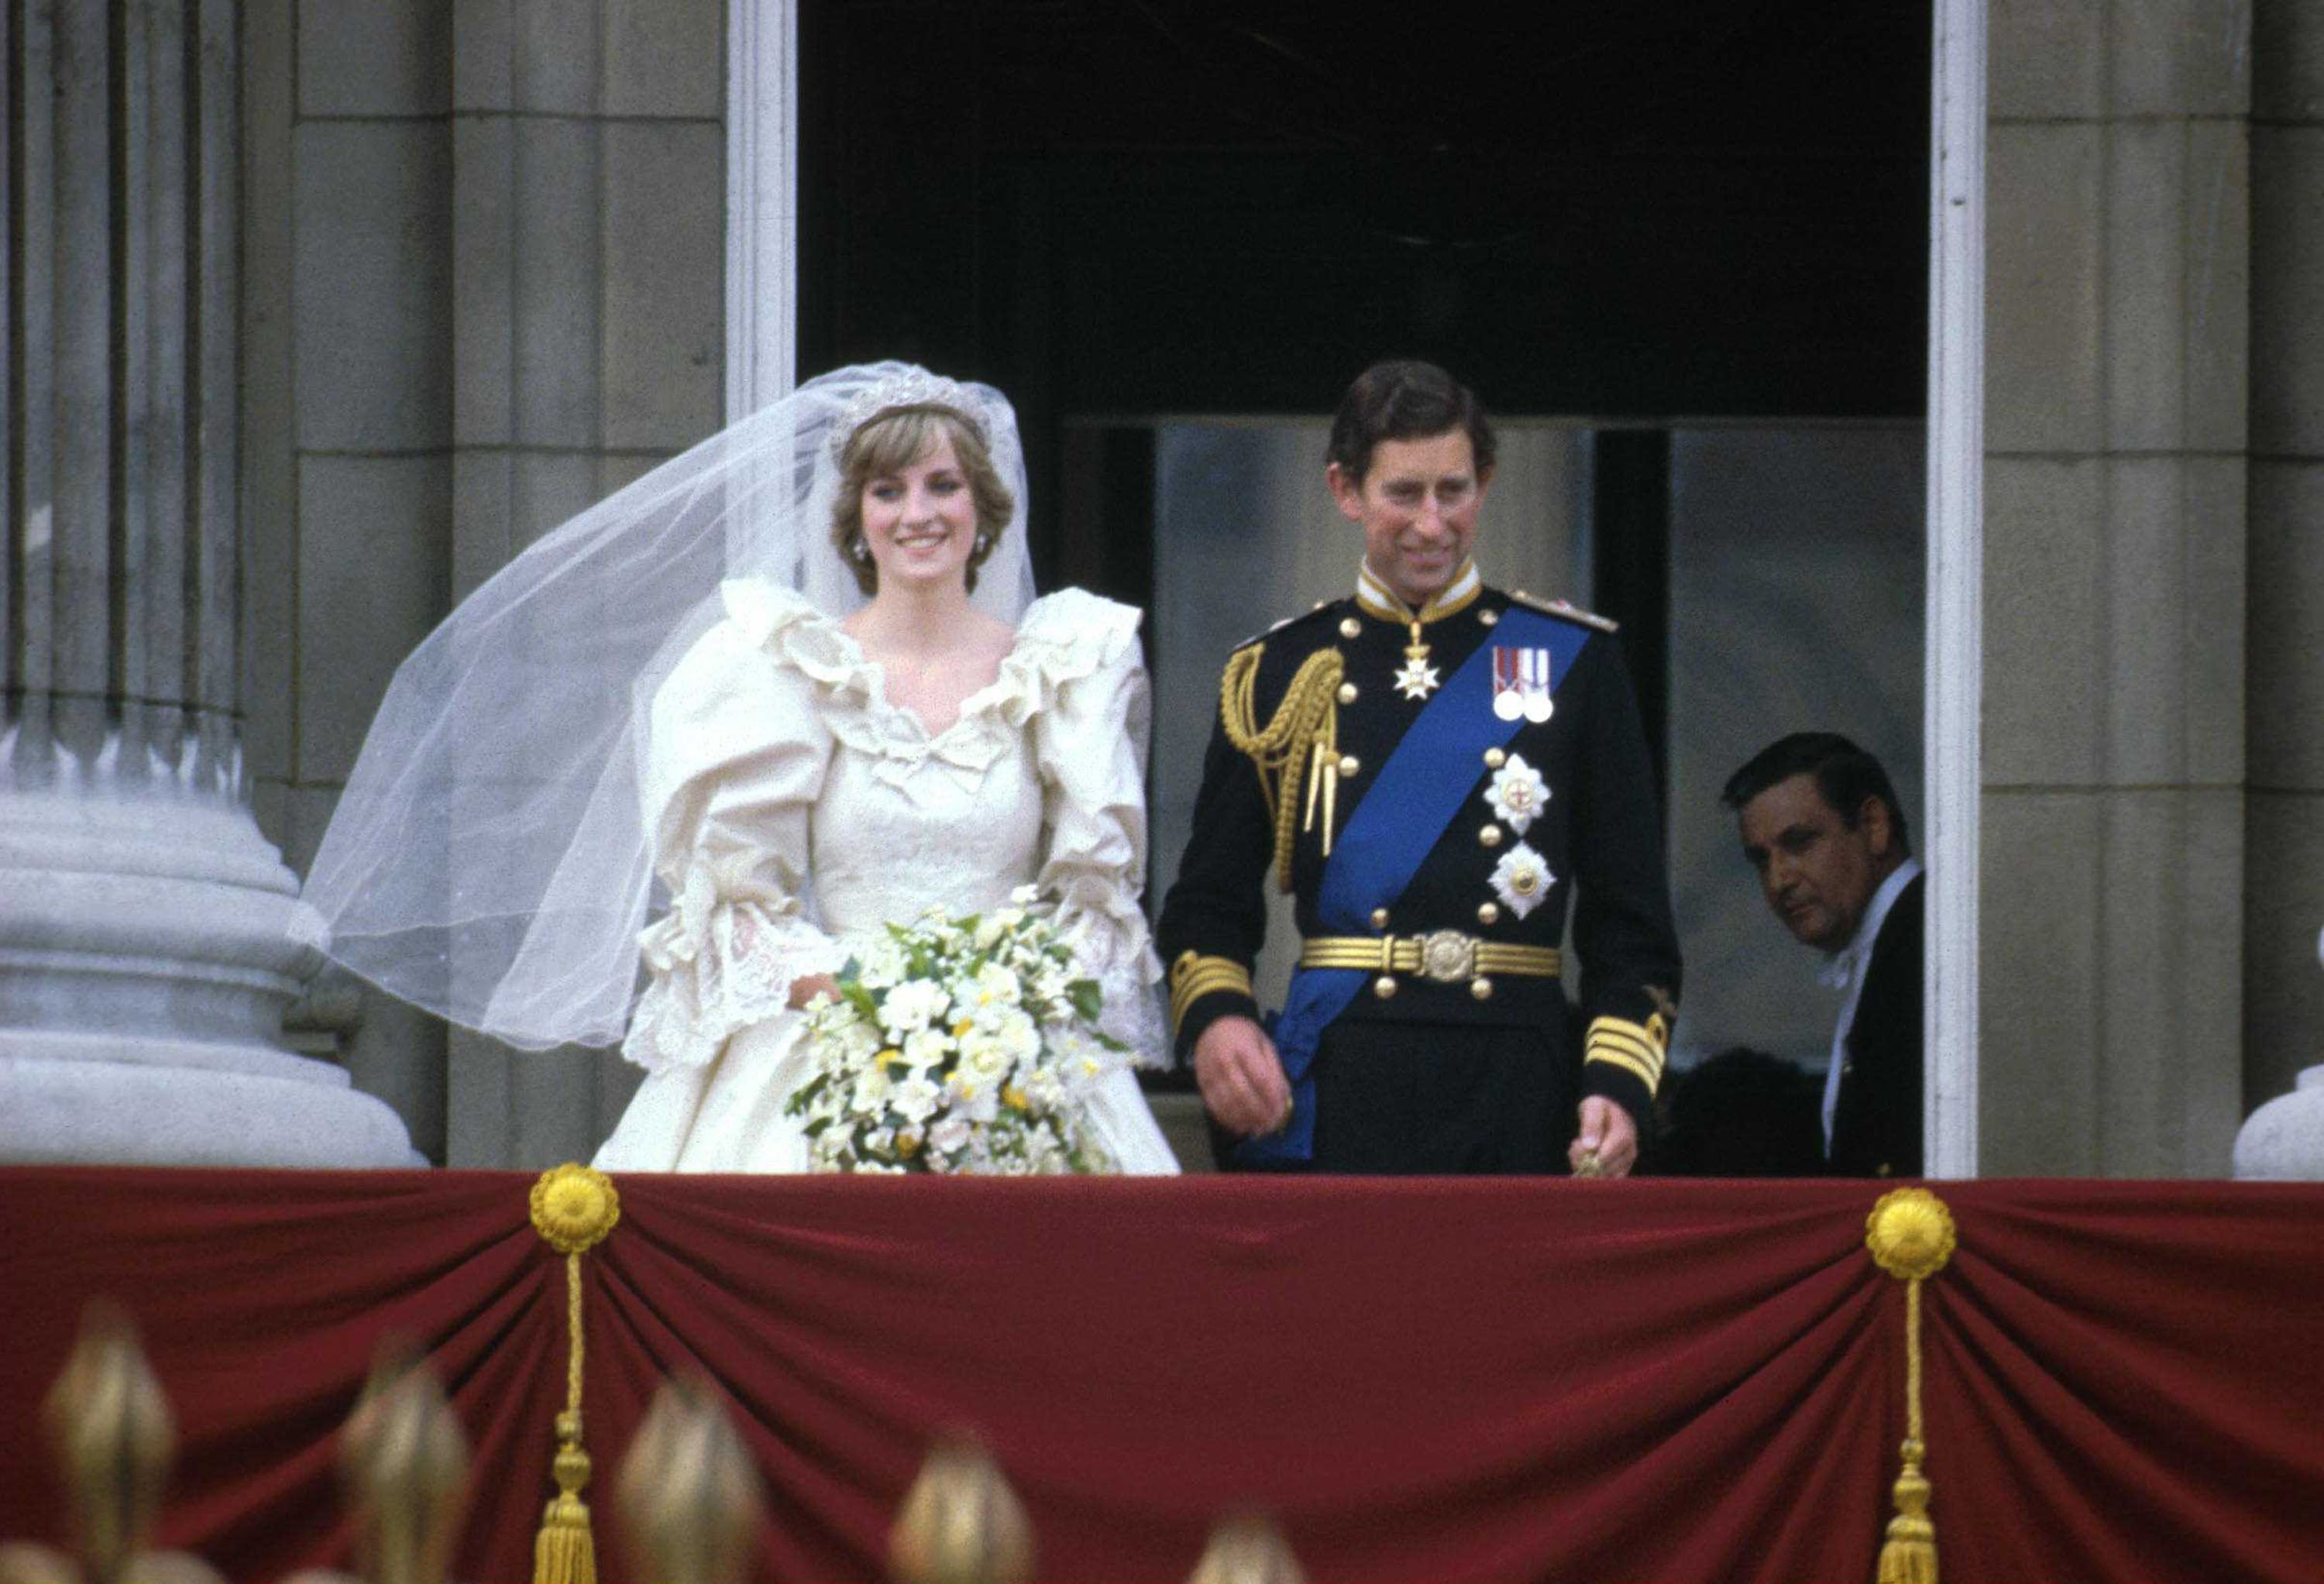 Prince Charles and Princess Diana on the balcony of Buckingham Palace after their wedding ceremony at St. Paul's Cathedral, London, England on July 29, 1981 | Photo: Express Newspapers/Getty Images